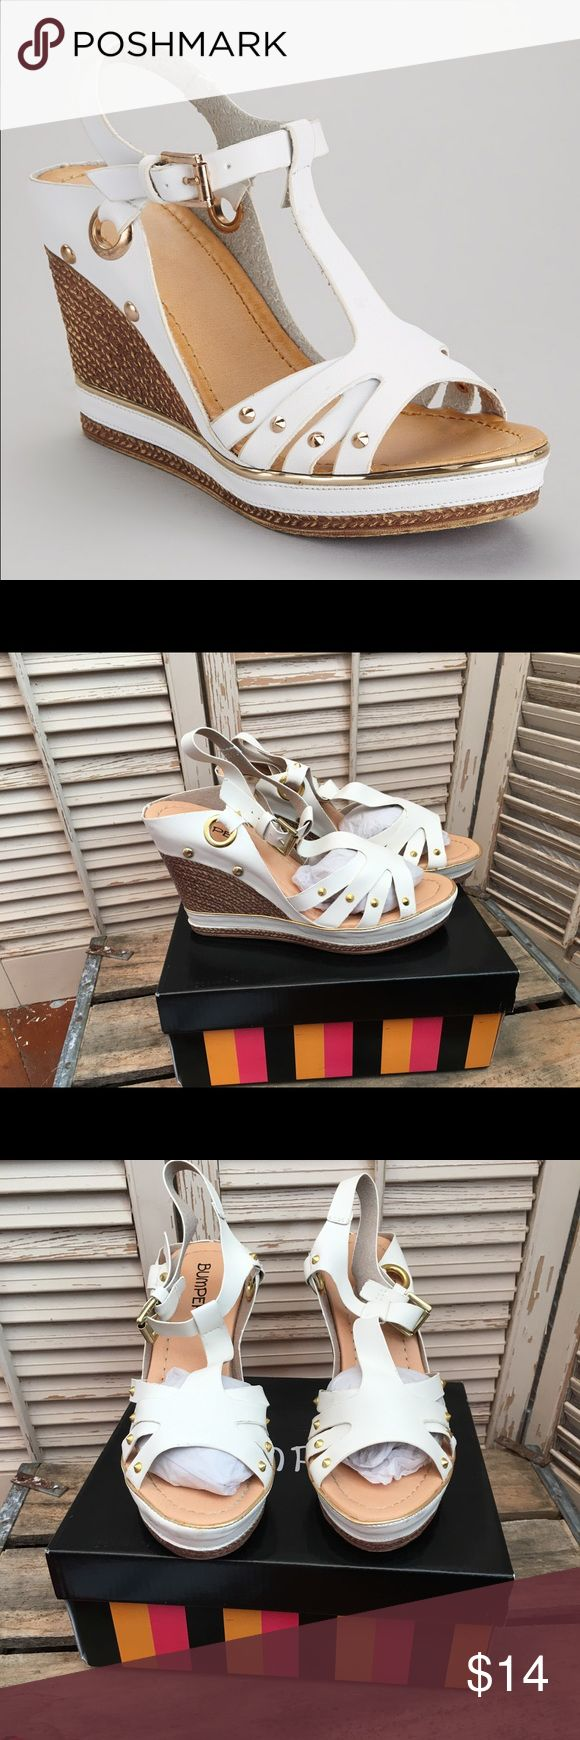 Carissa White Gromit Wedge Sandals - size 7 Time to clean out my closets!!!                                 These white wedge sandals are fun, cute, with just the right amount of edge. I only wore then a couple of times but they were comfortable. Comes with box, from a smoke and pet free home. Bumper Shoes Wedges